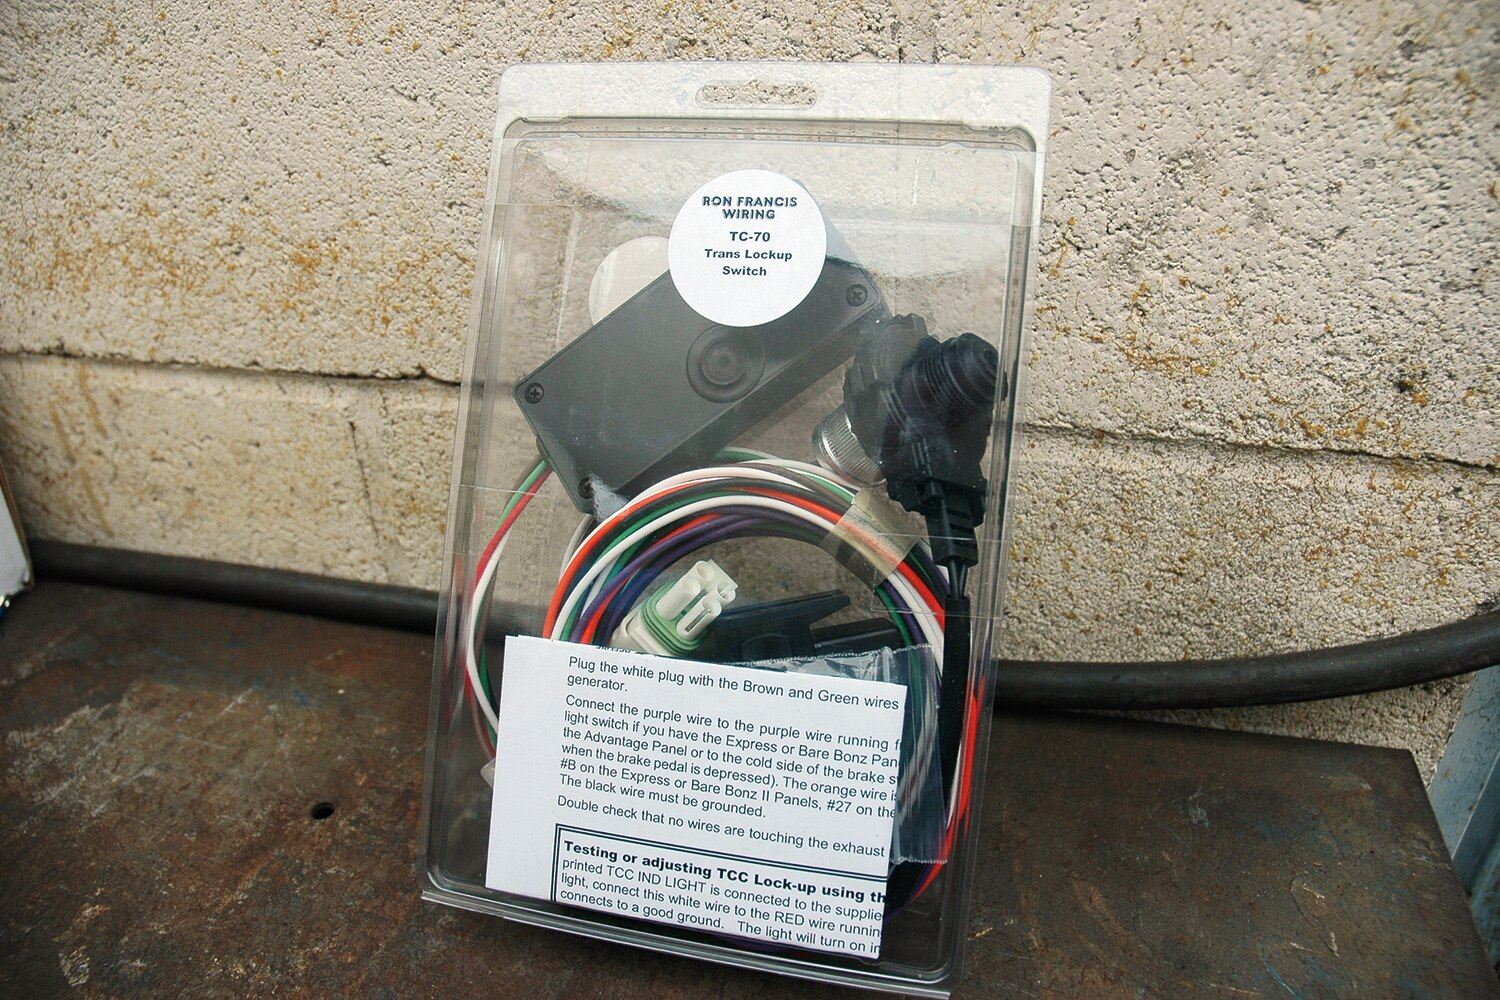 ron-francis-700R-transmission-lockup-switch-TC-70-promo